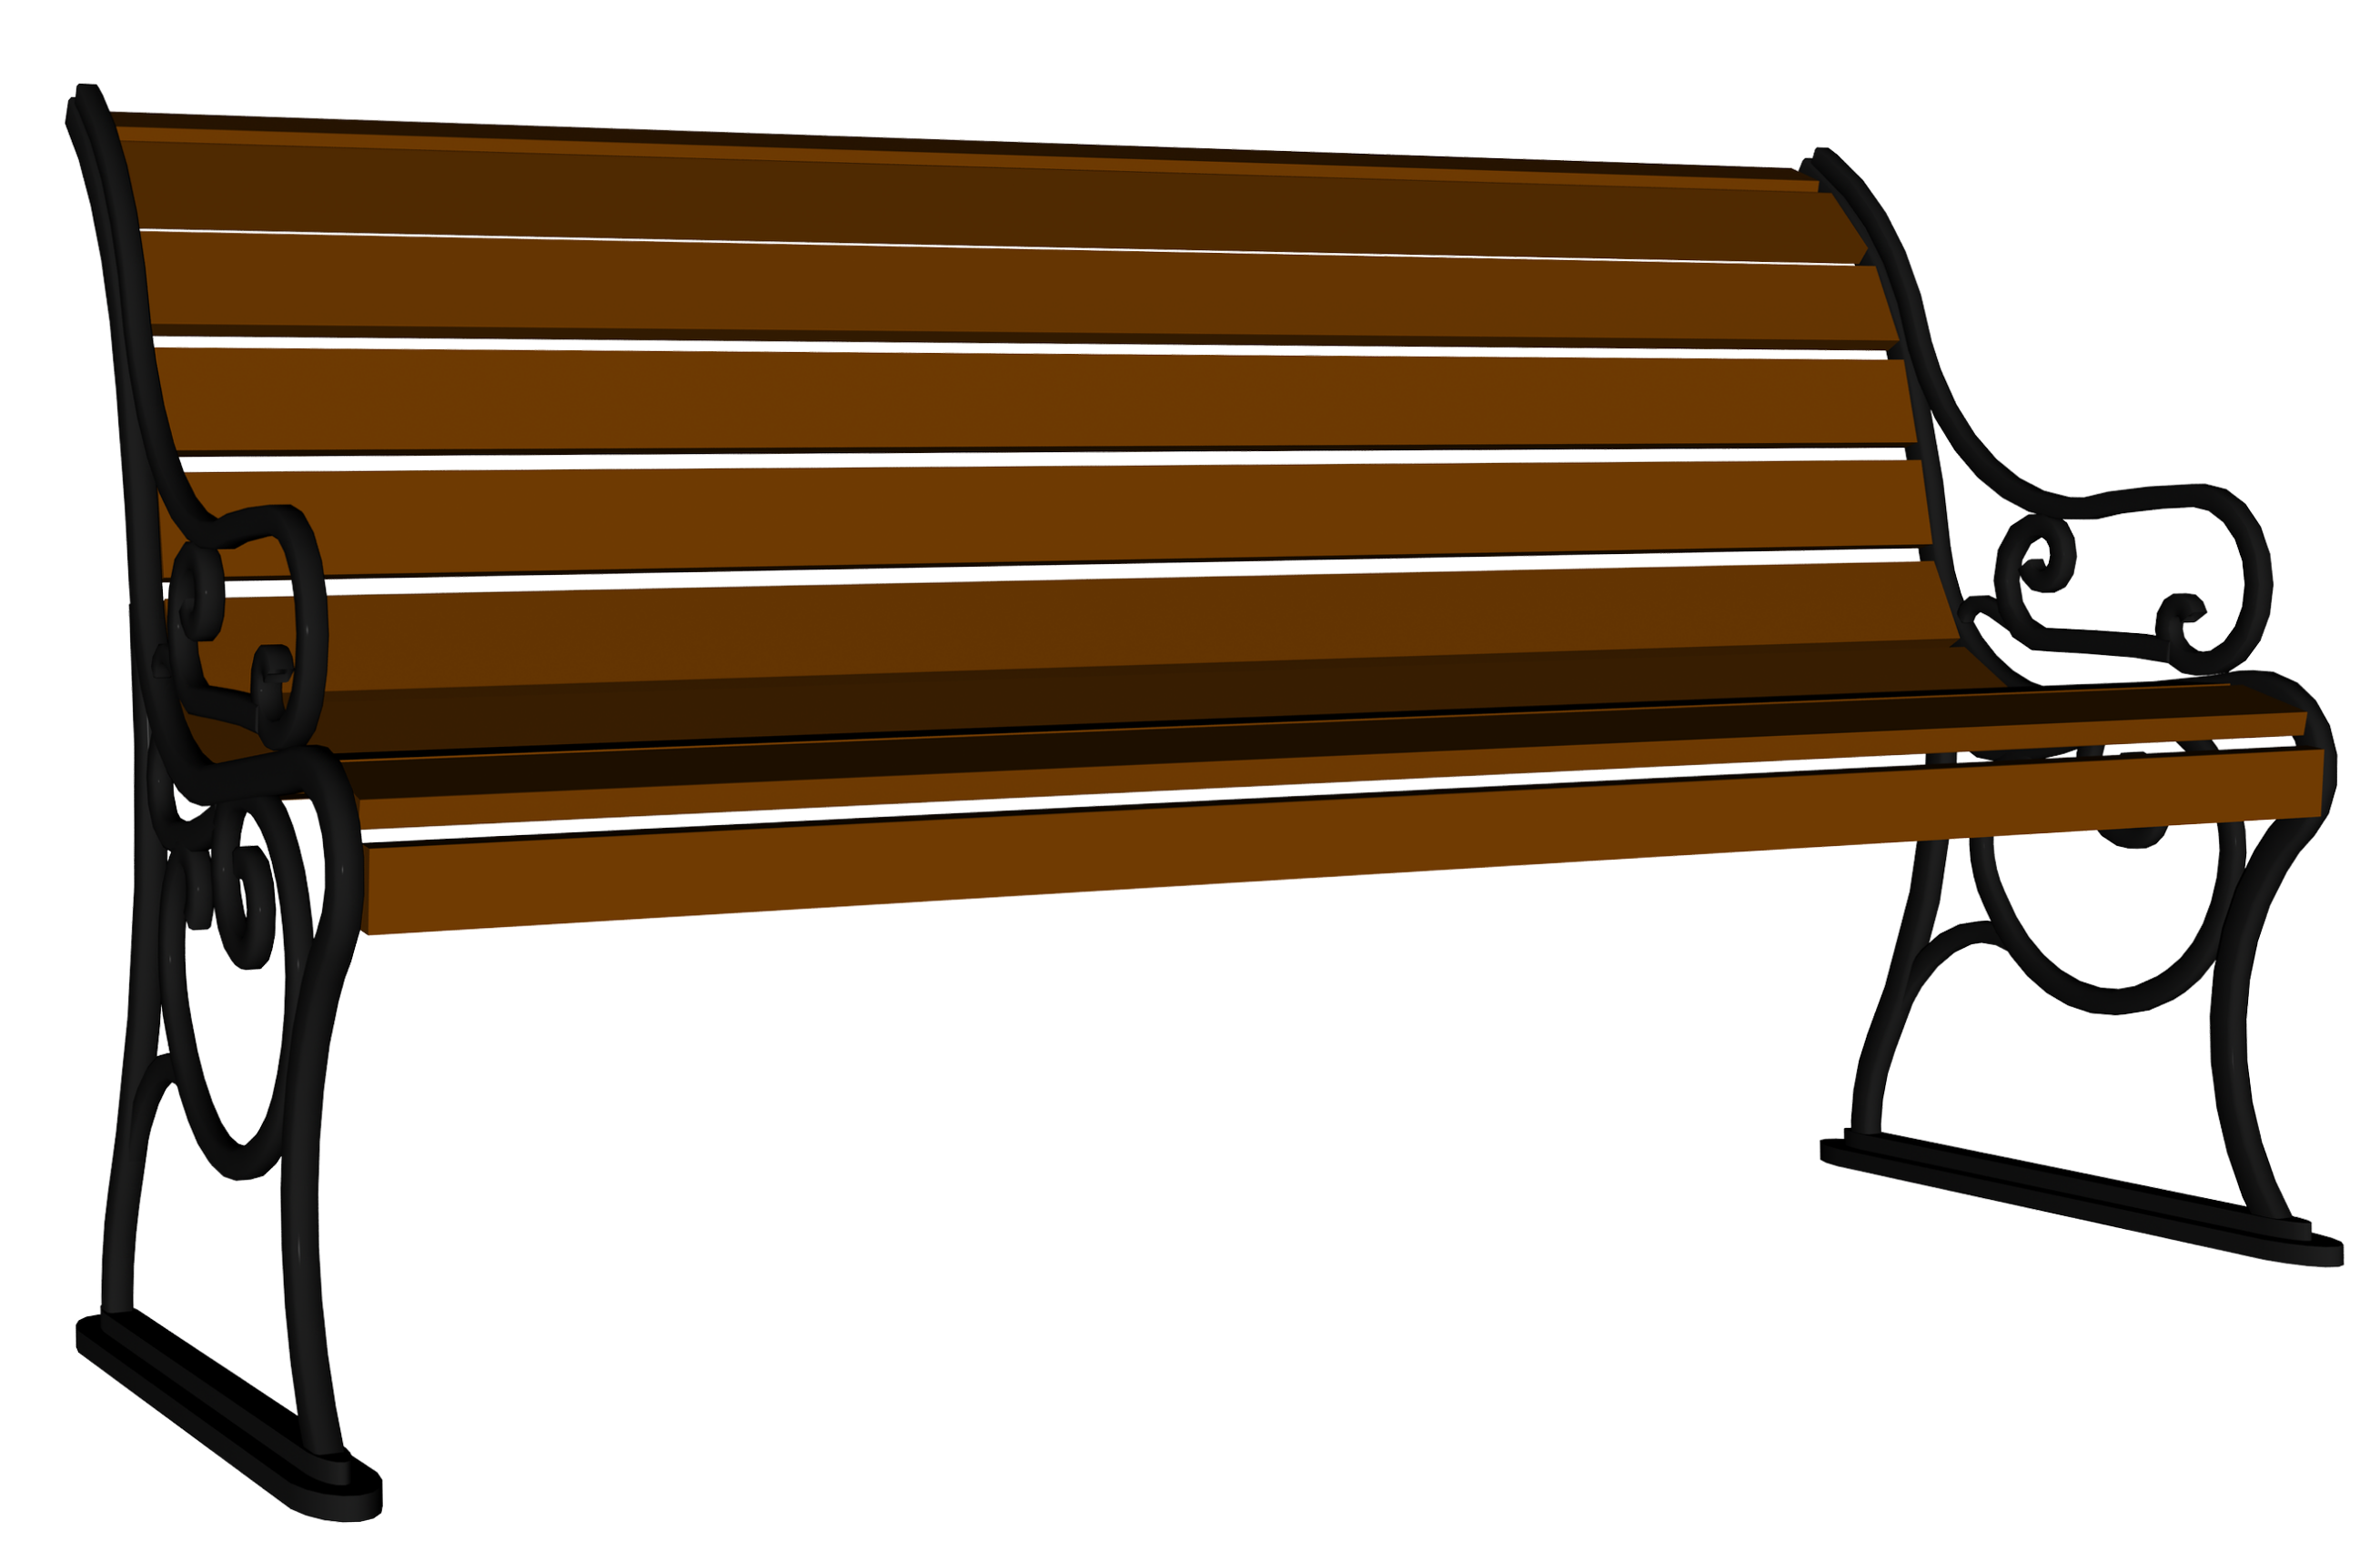 Bench clipart Clipart (66+) Gallery Image PNG